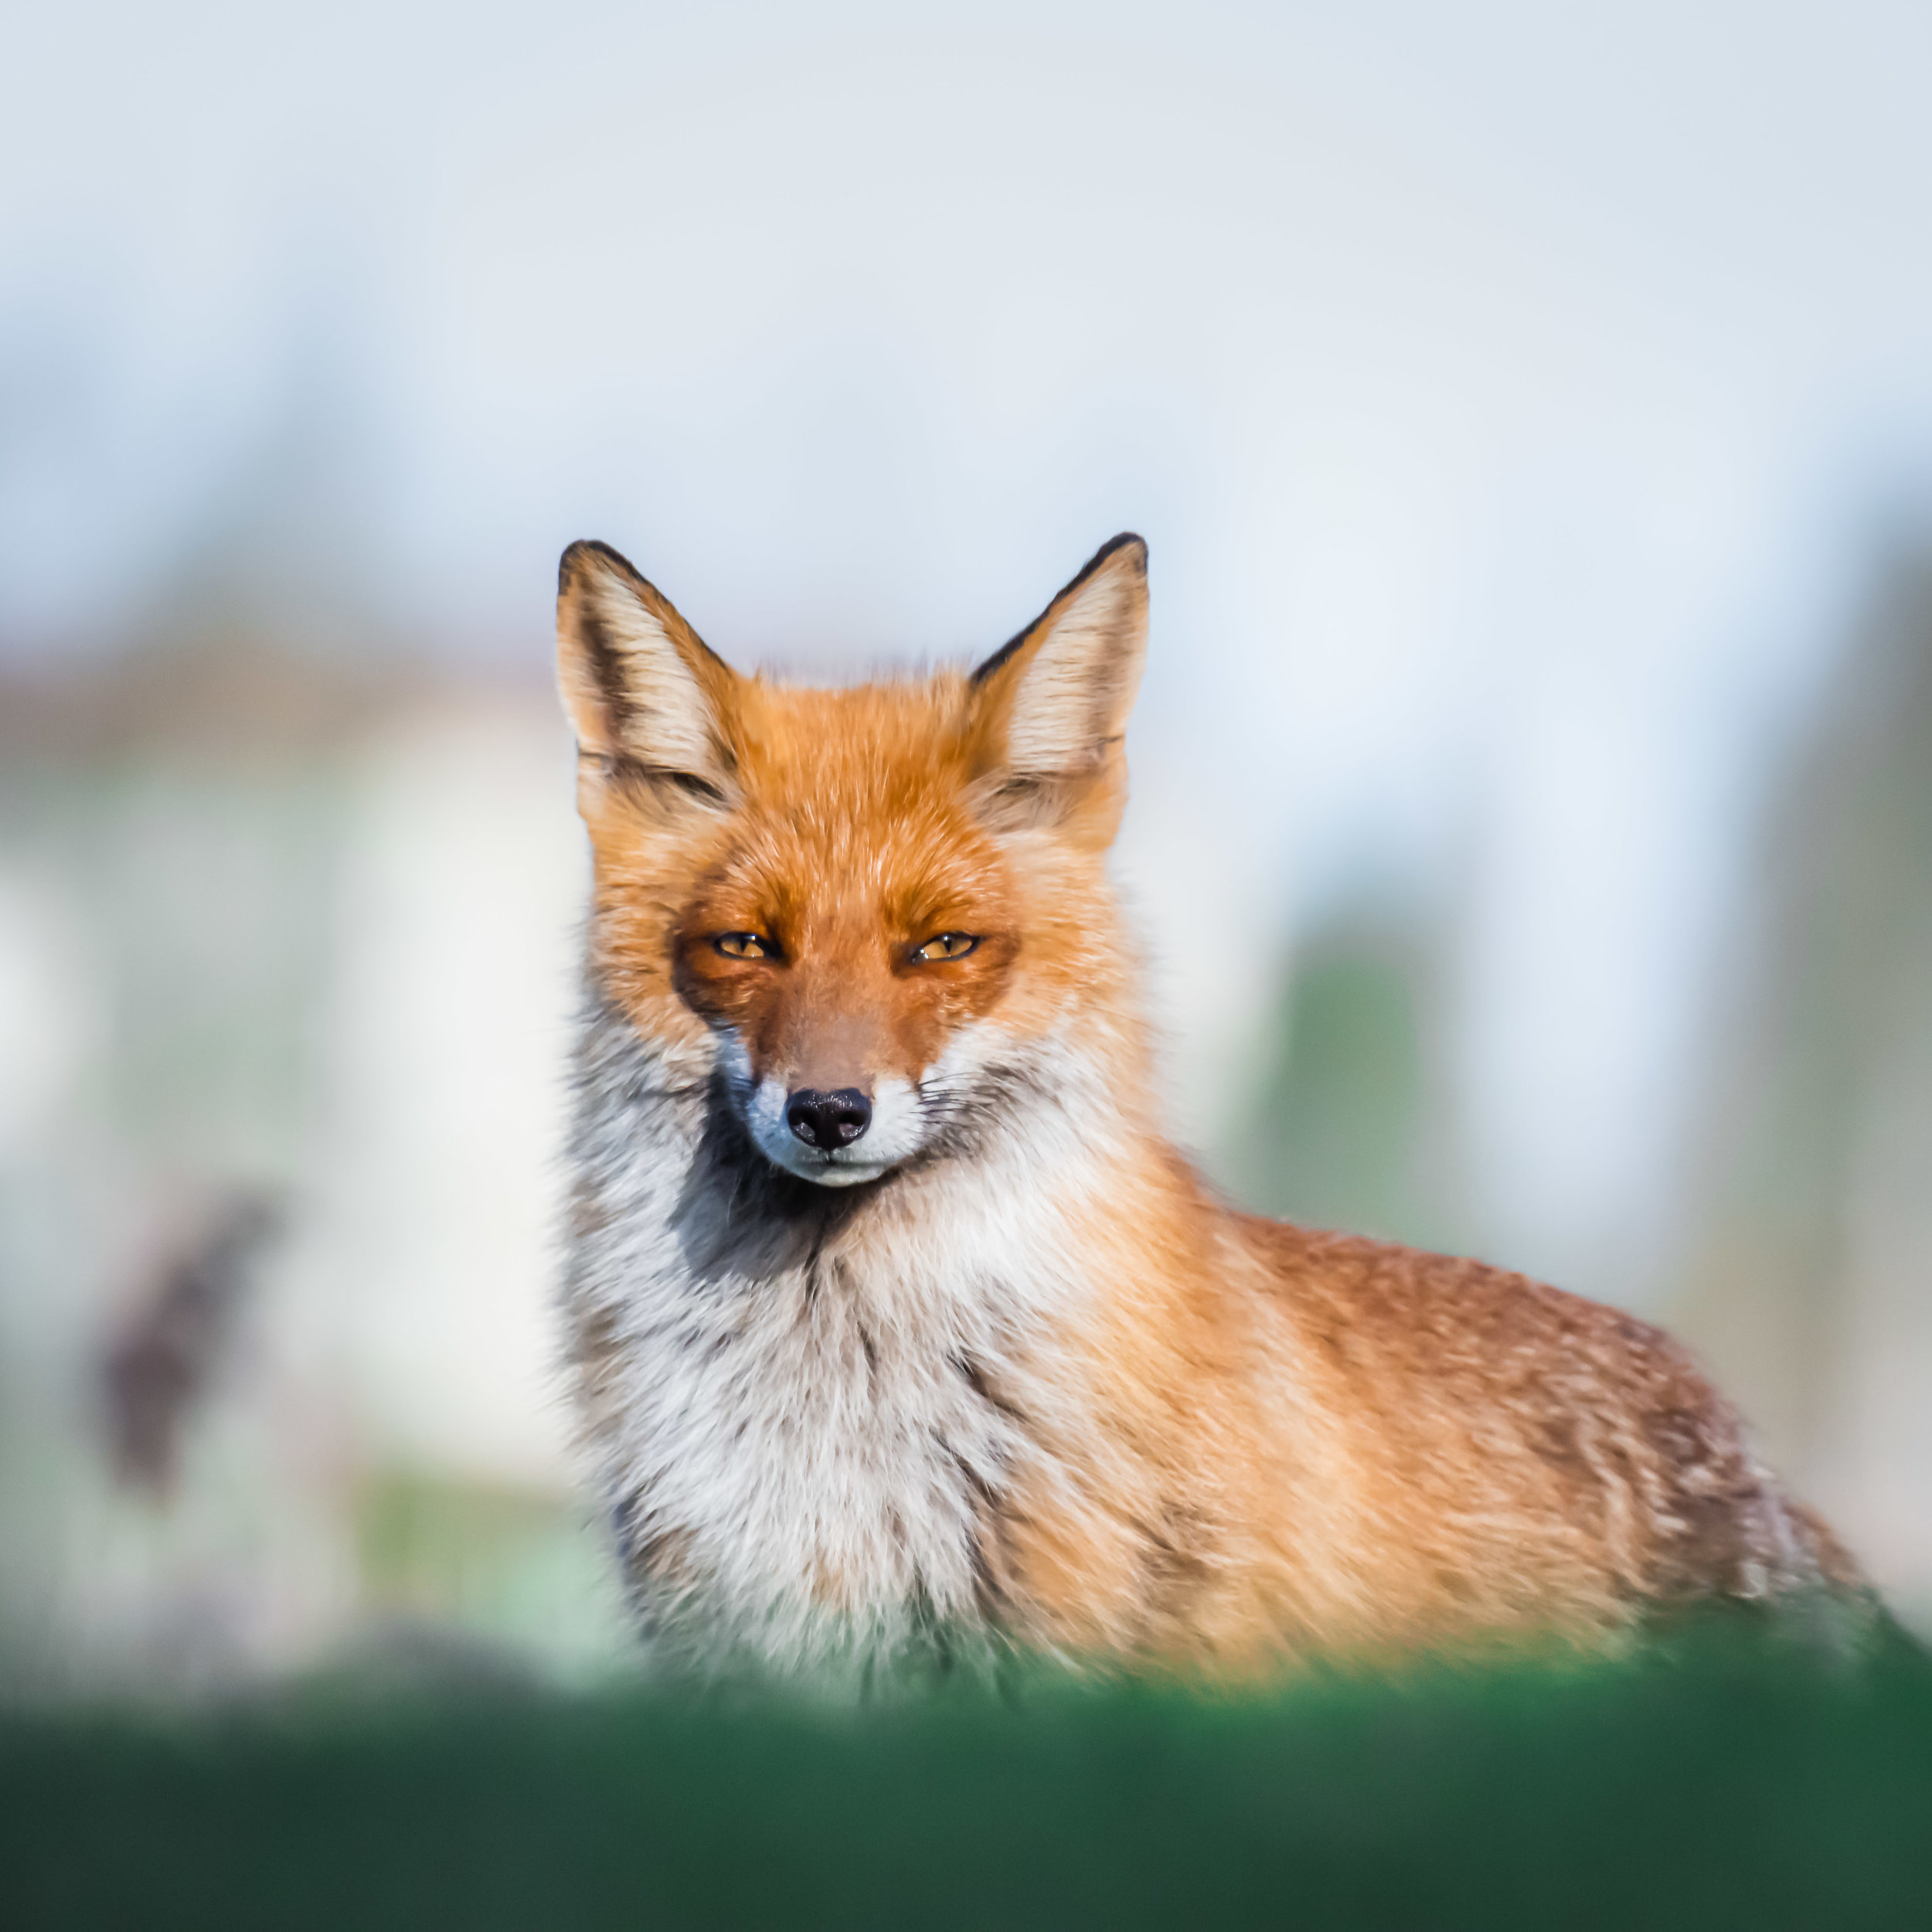 Probably the most beautiful fox I've managed to photograph.